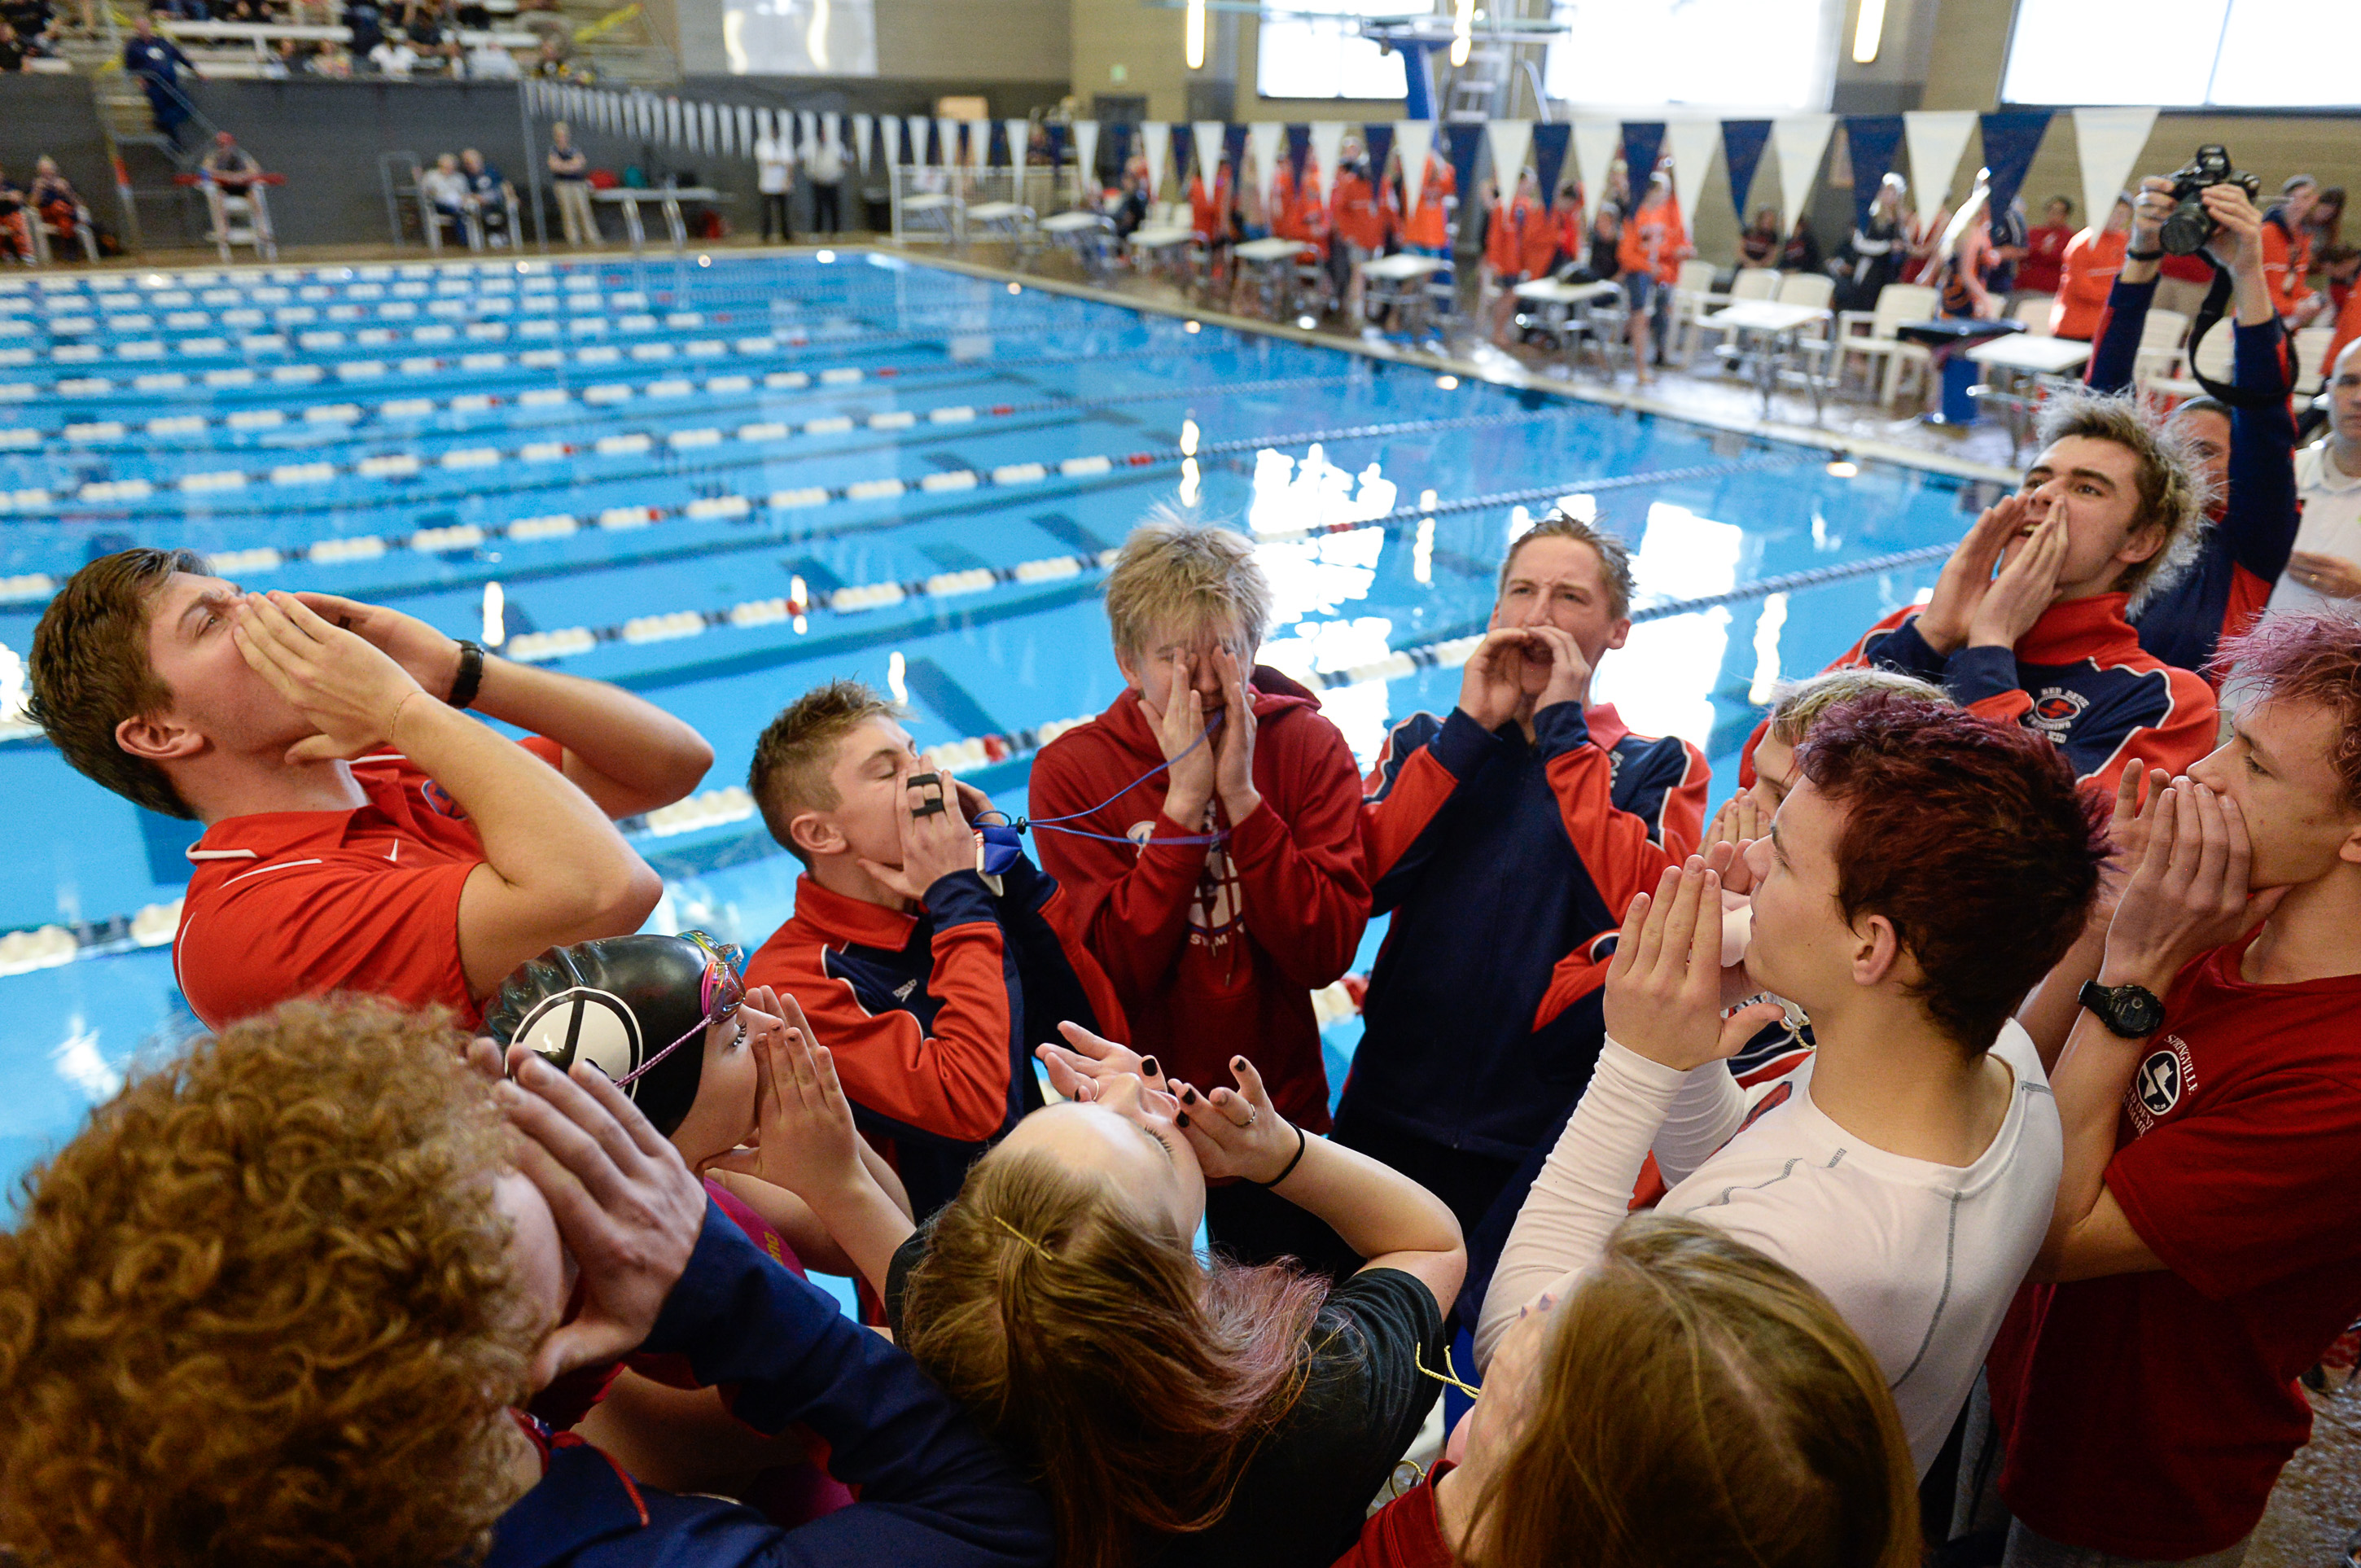 (Francisco Kjolseth  |  The Salt Lake Tribune)  The Springville team gets pumped up before the start of the high school swimming 5A State Championships in Bountiful, Friday February 9, 2018.